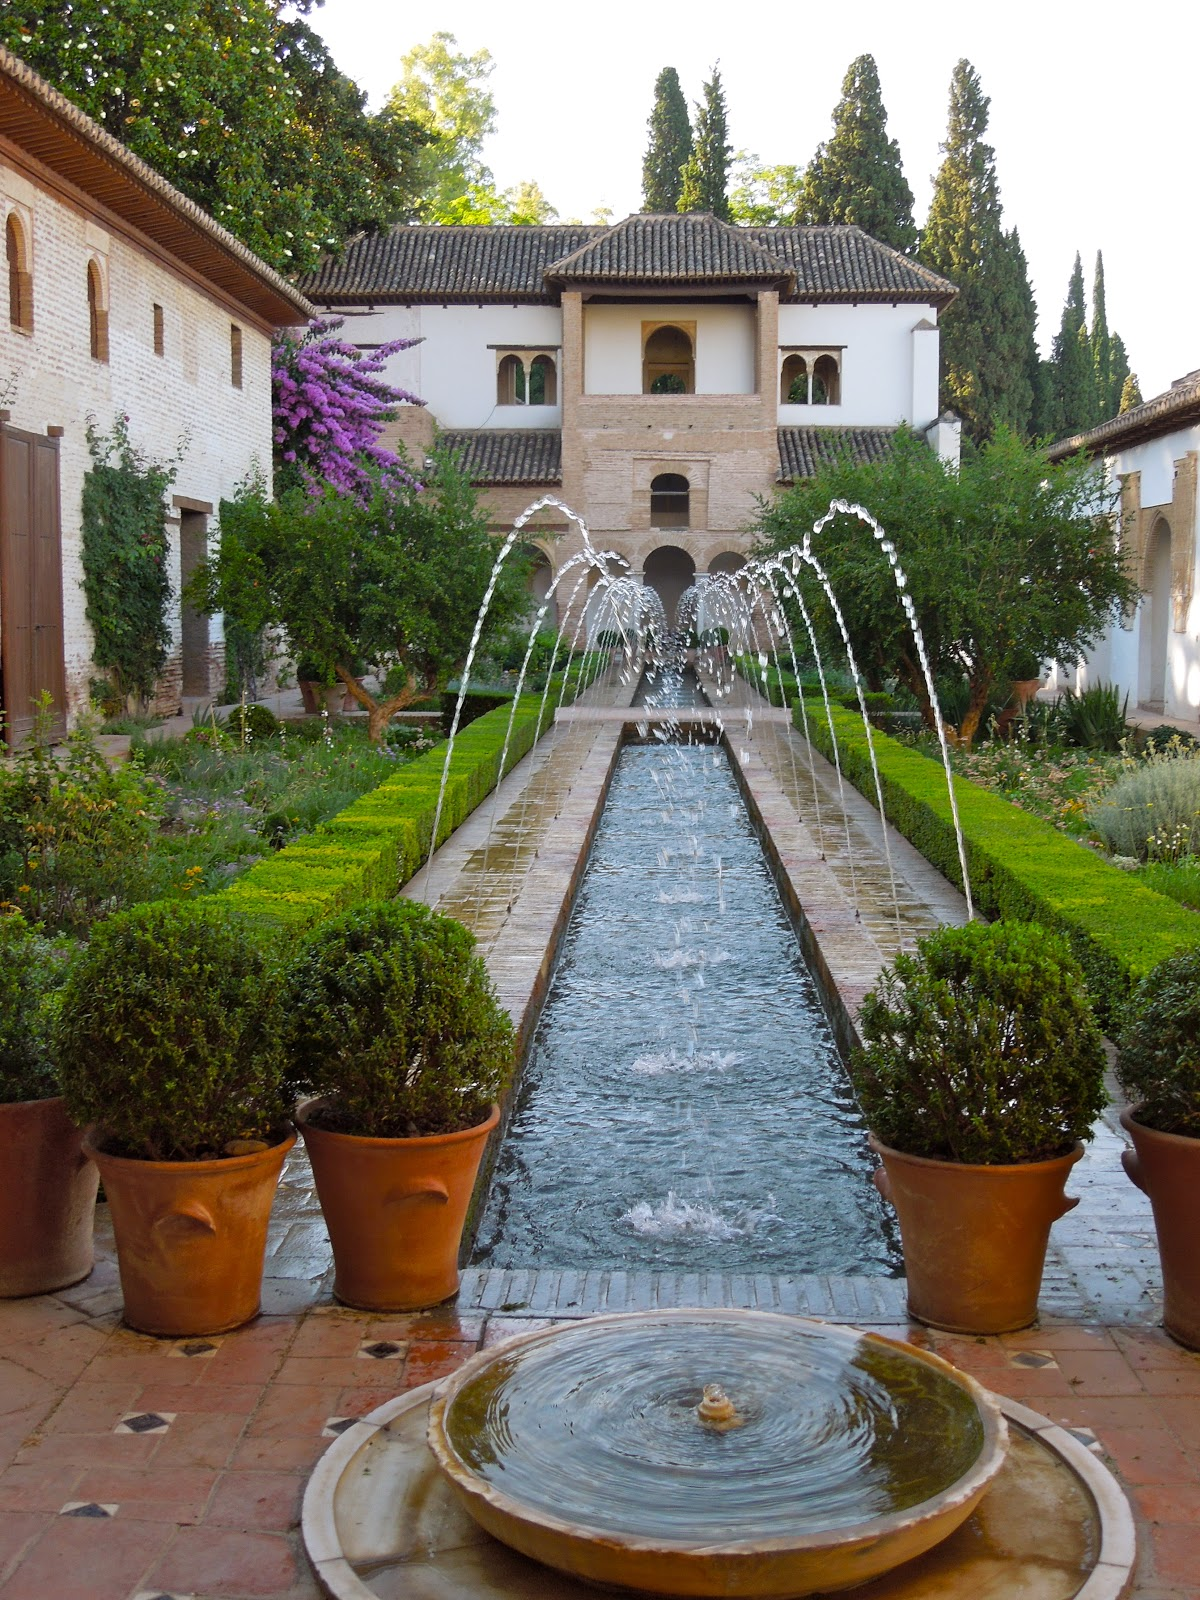 To Europe With Kids: Alhambra Part 1: Generalife Gardens